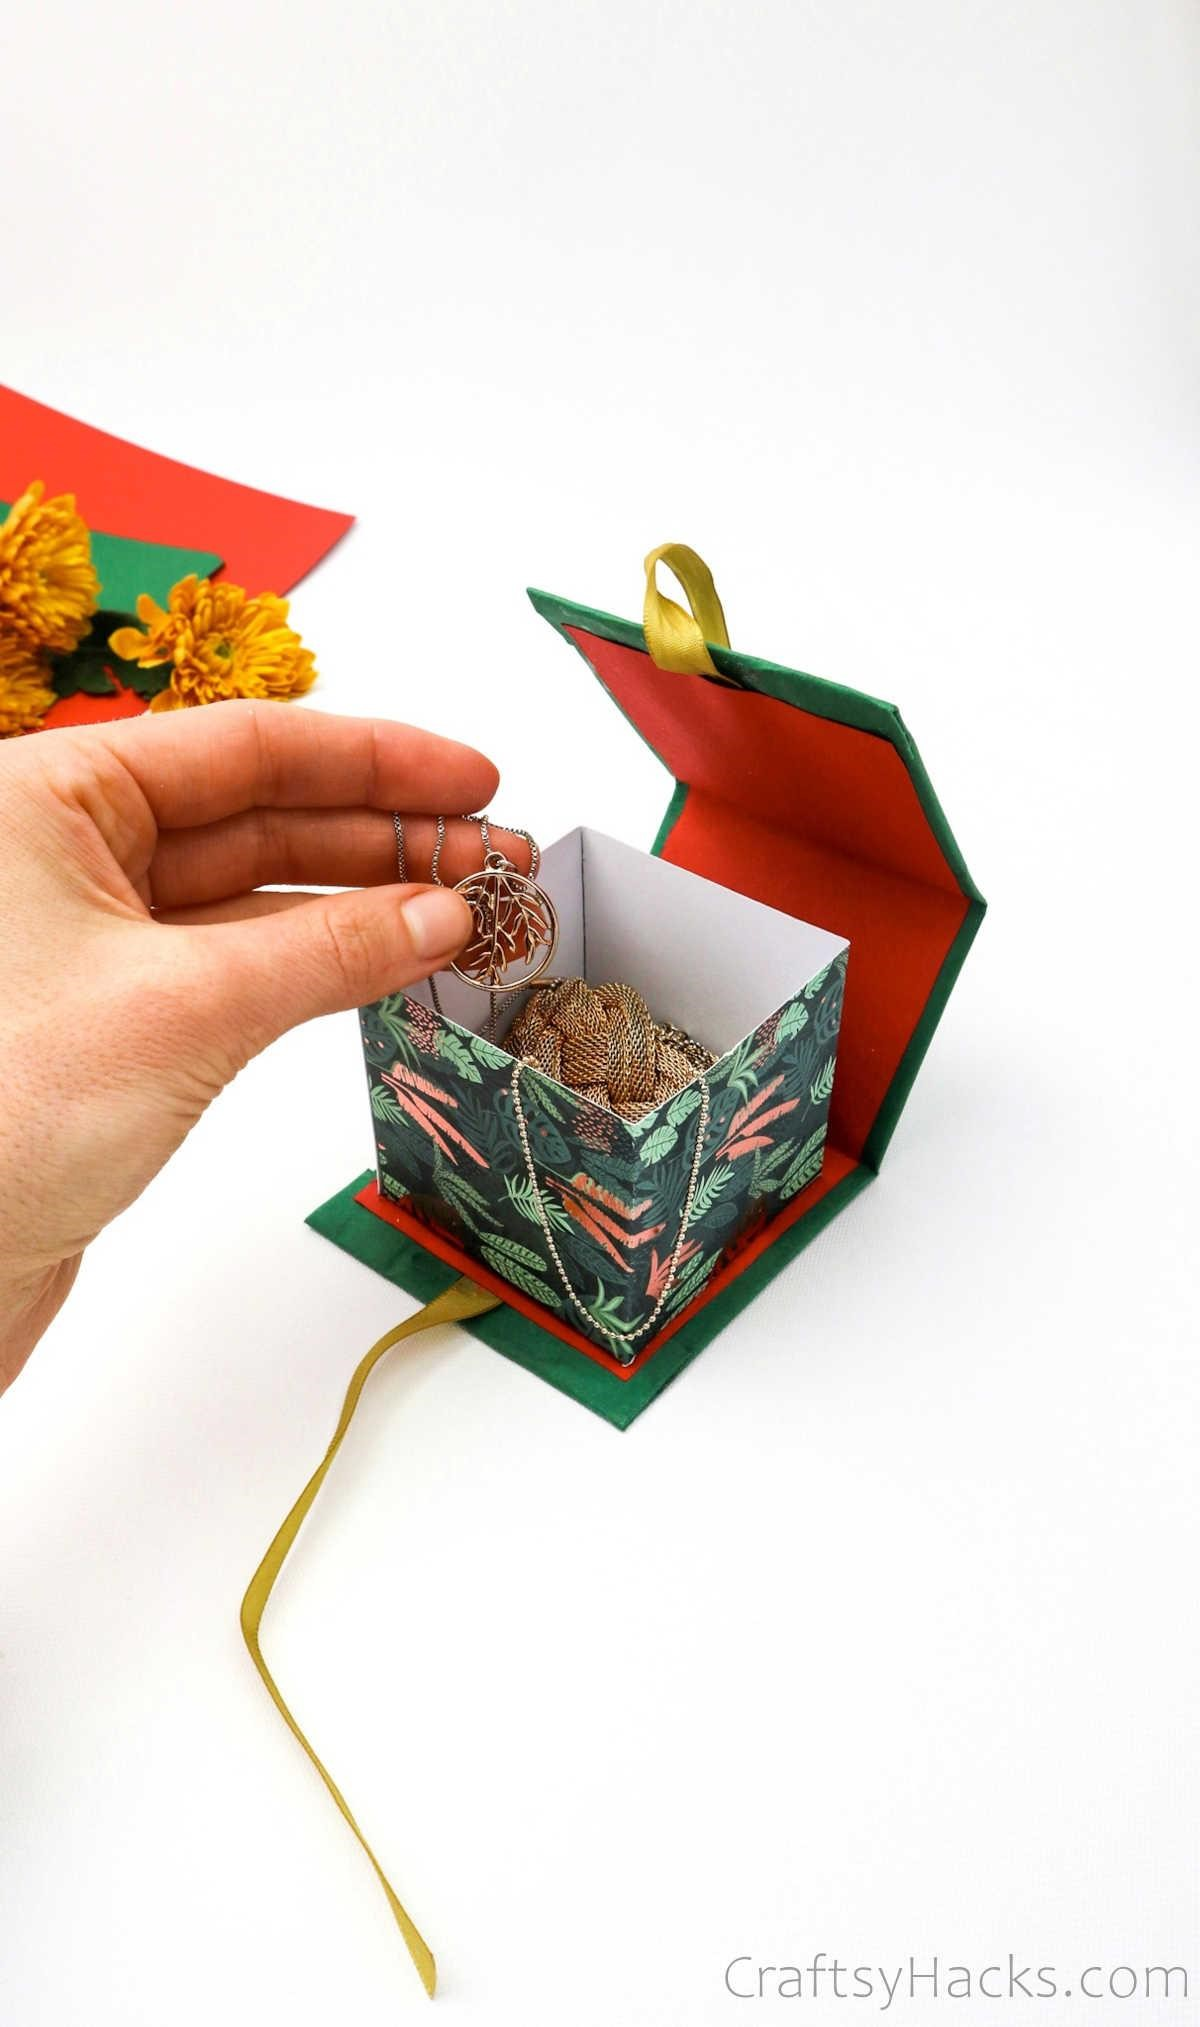 holding necklace above gift box